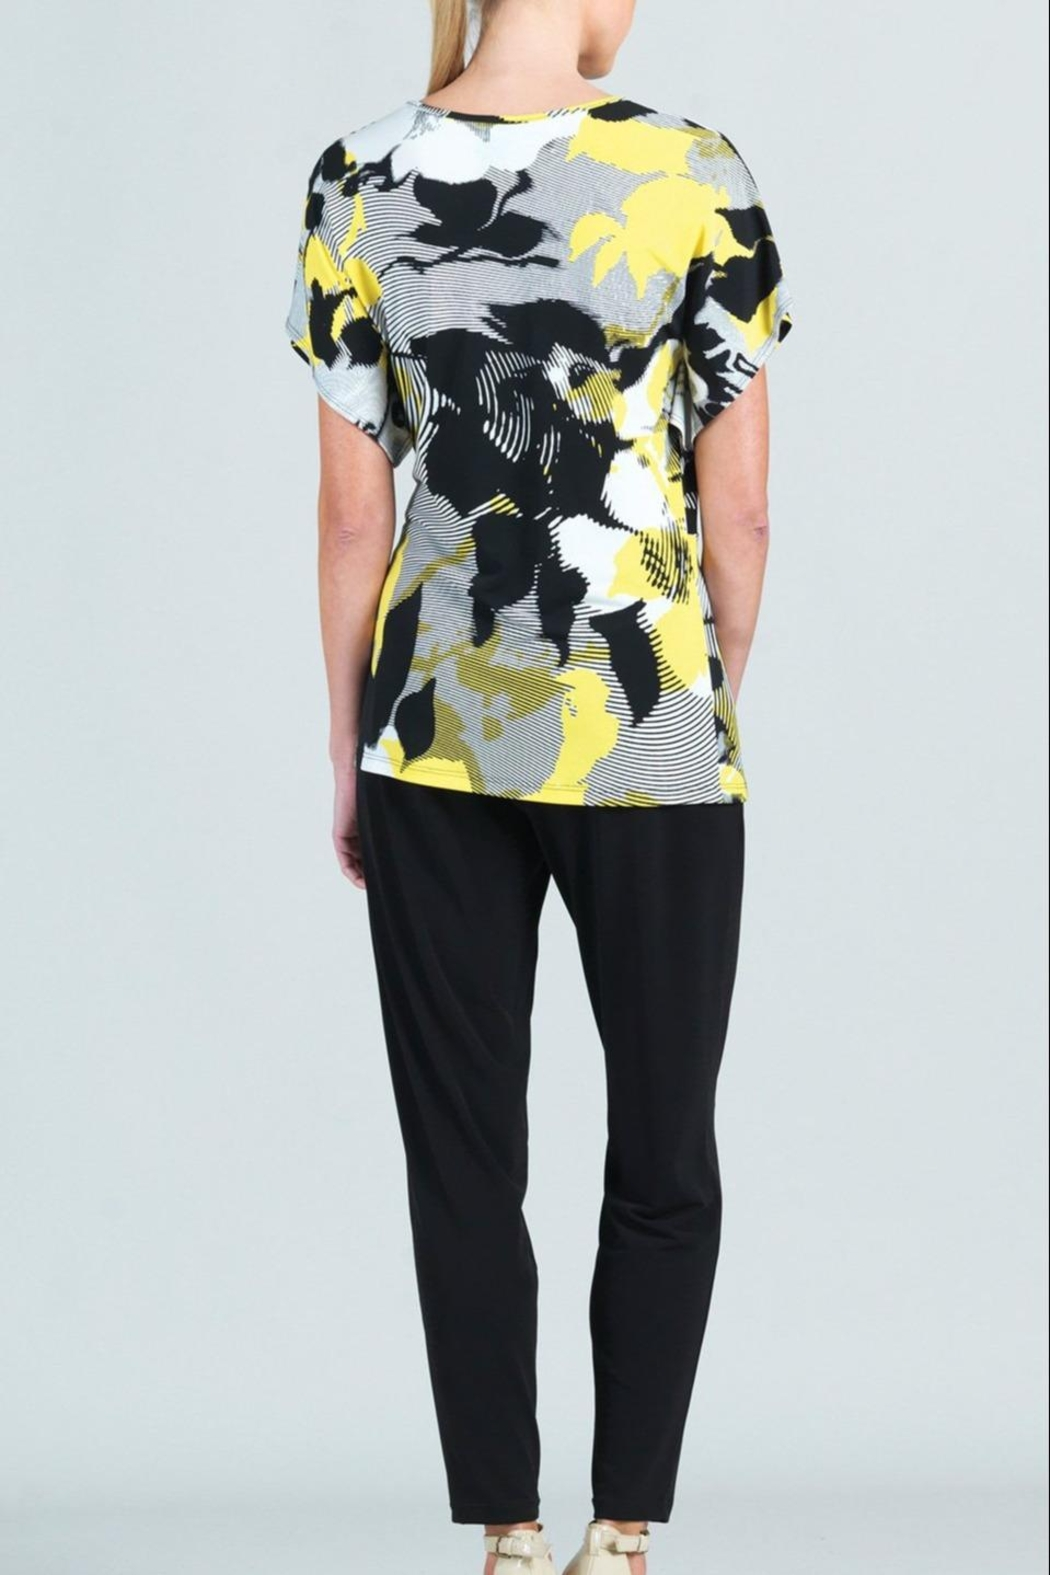 Clara Sunwoo Abstract-Floral Side-Tie Knit-Tunic - Side Cropped Image